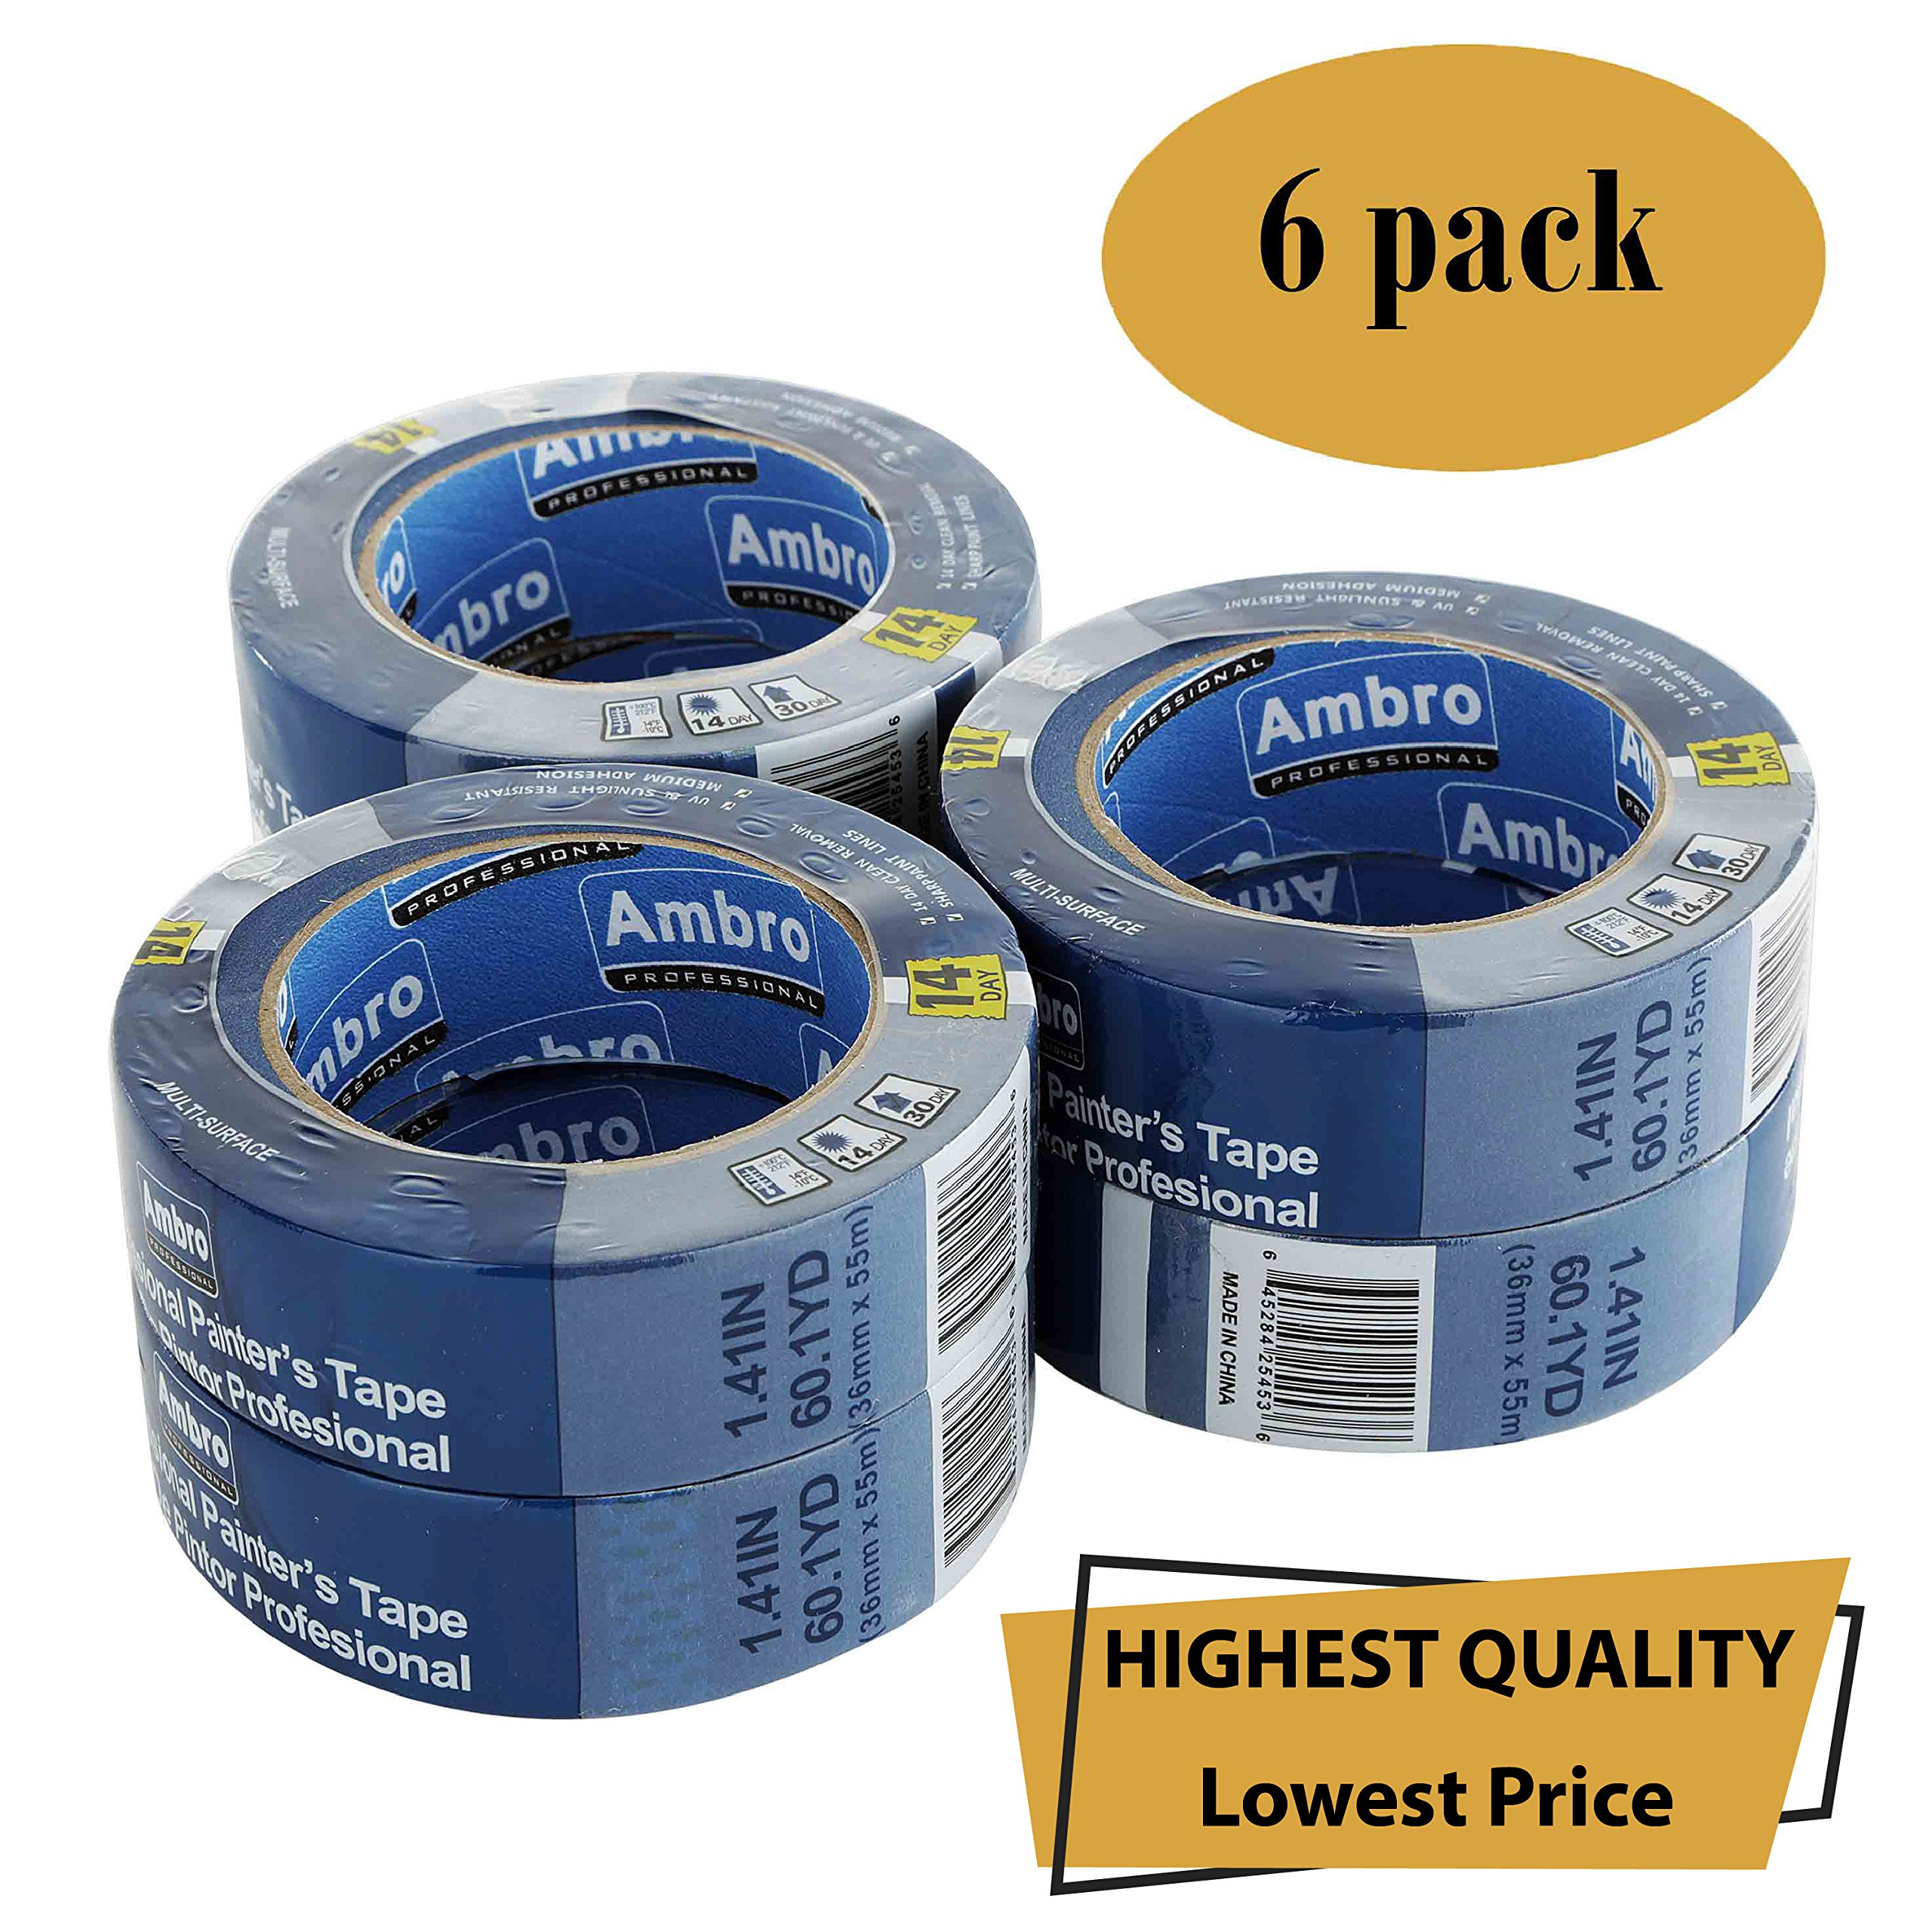 Ambro Professional Painters Tape Multi Surface Use (Blue) (6 pack, 1.5 inches x 60 yds)